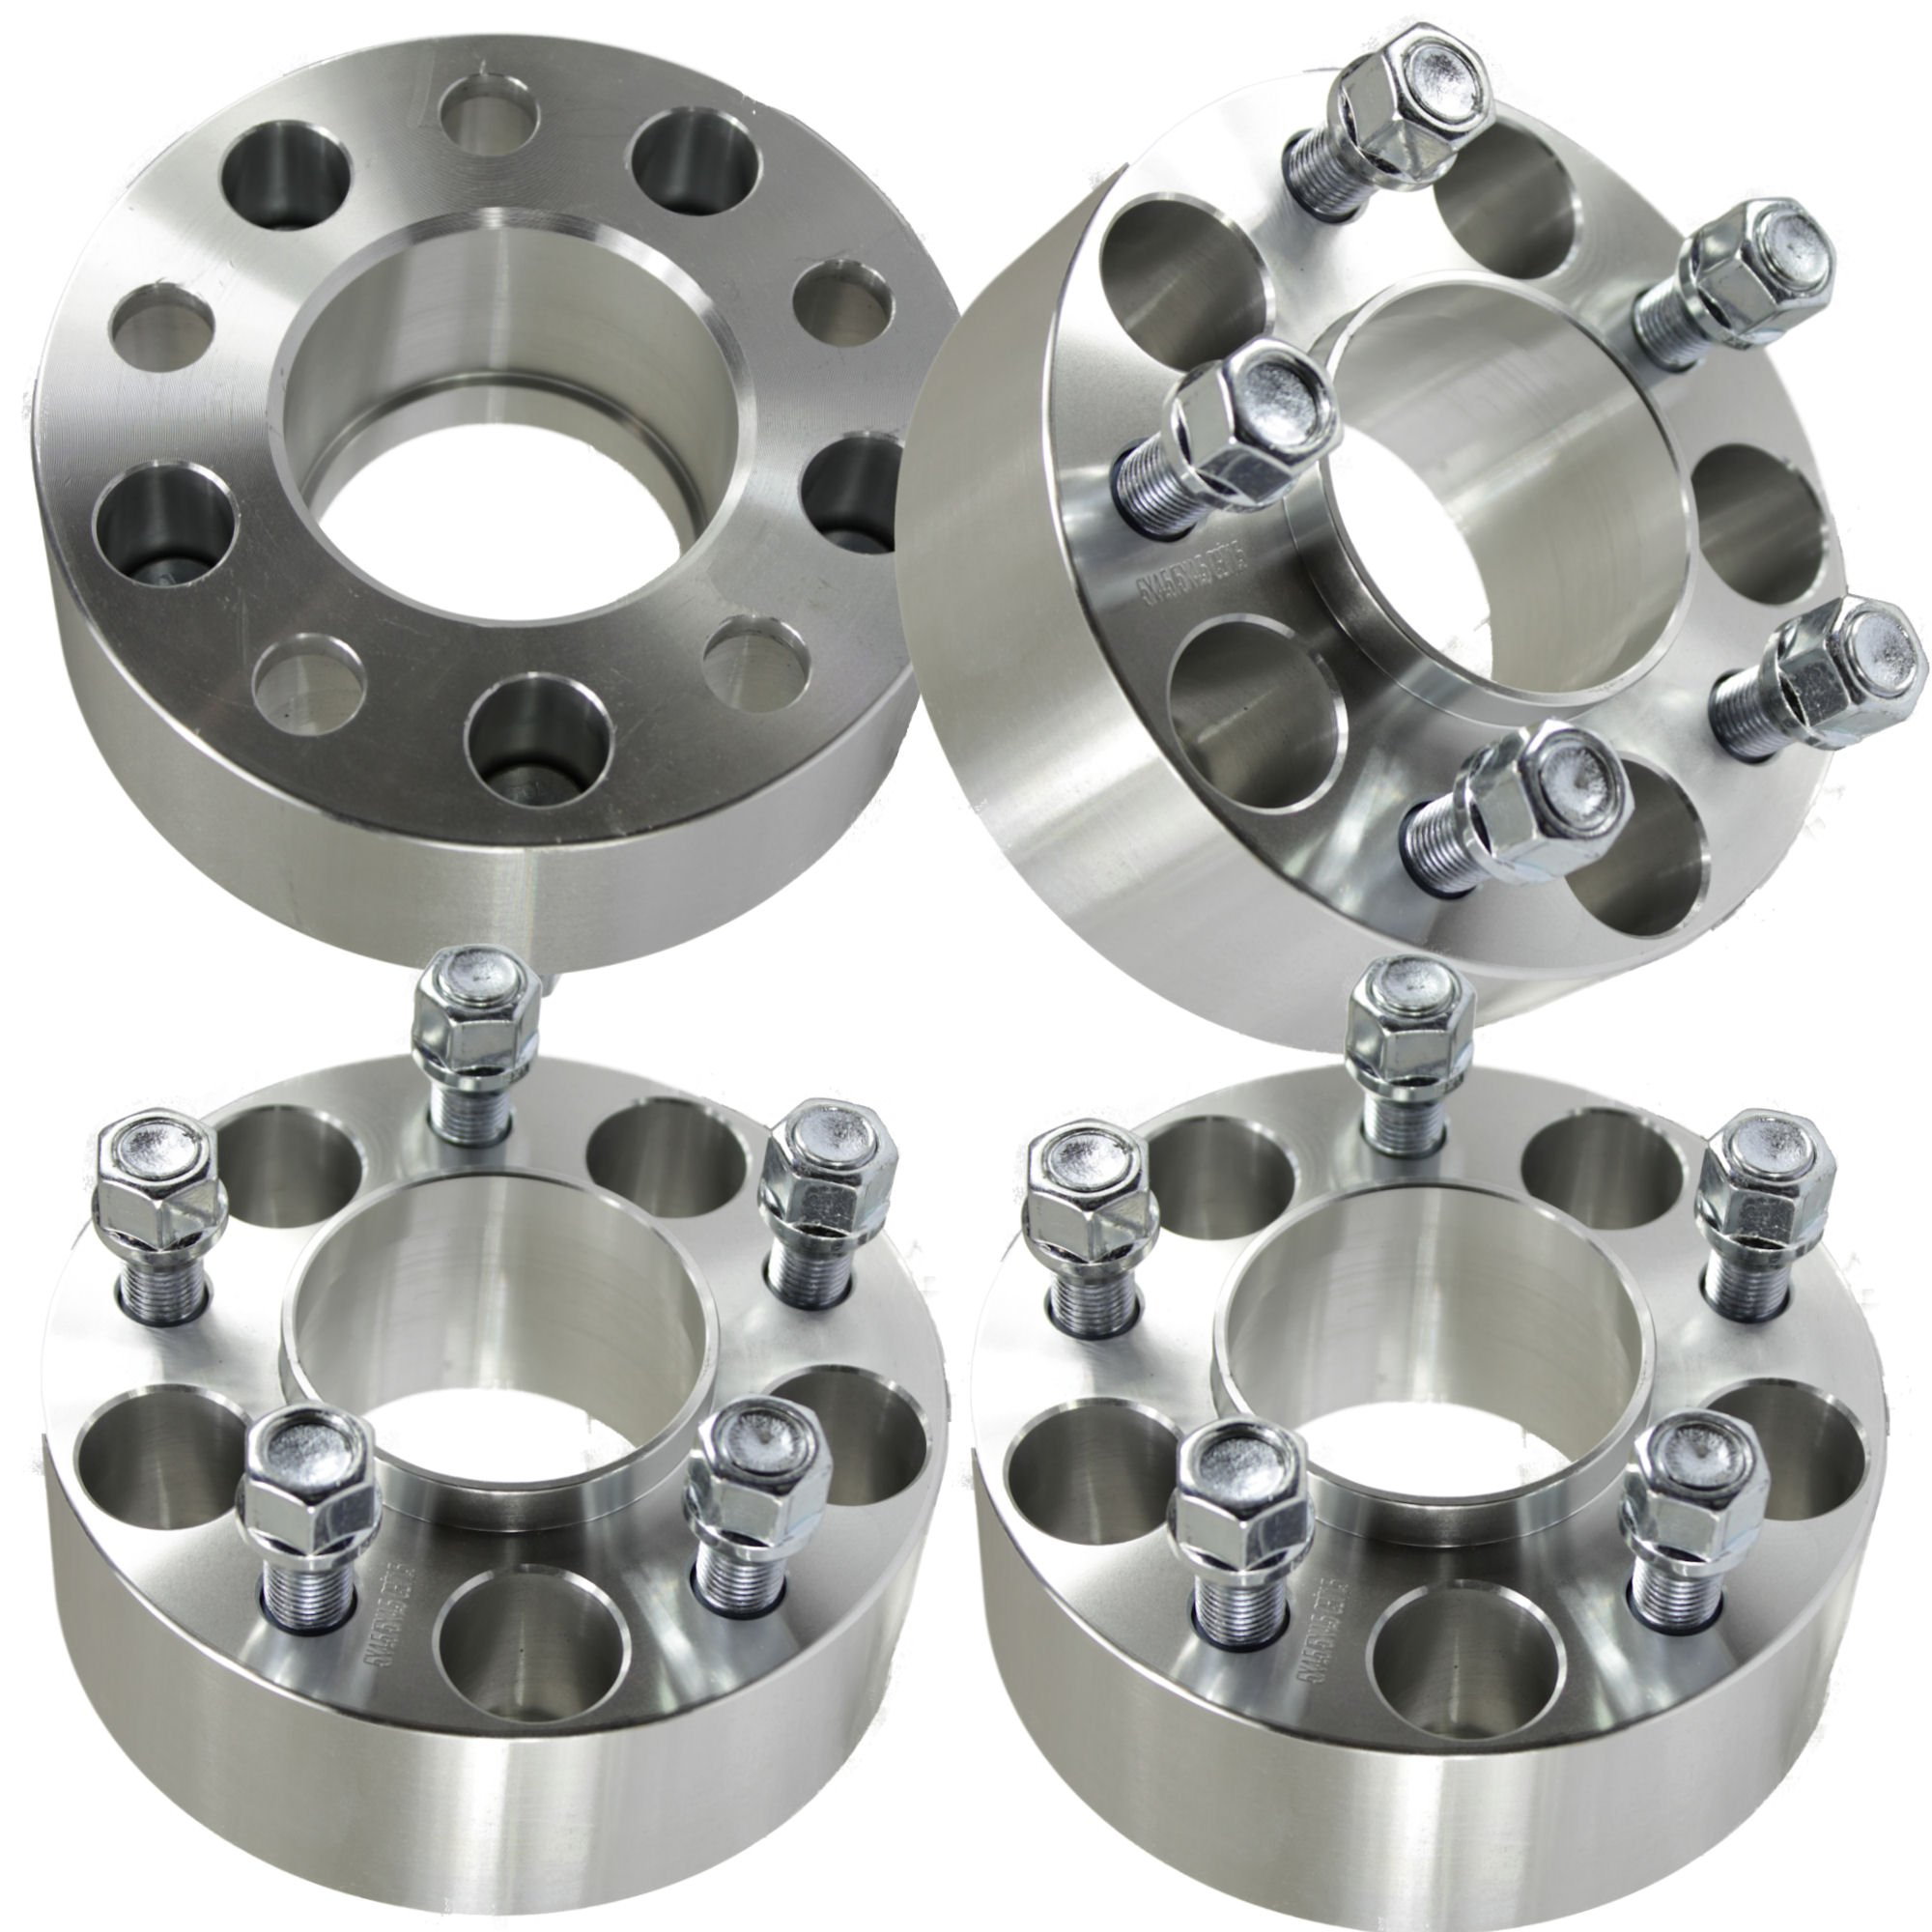 (4) Dodge 50mm (2'') 5x4.5 Hubcentric Wheel Spacers | Charger Challenger Magnum Chrysler 300 by Titan Wheel Accessories (Image #1)